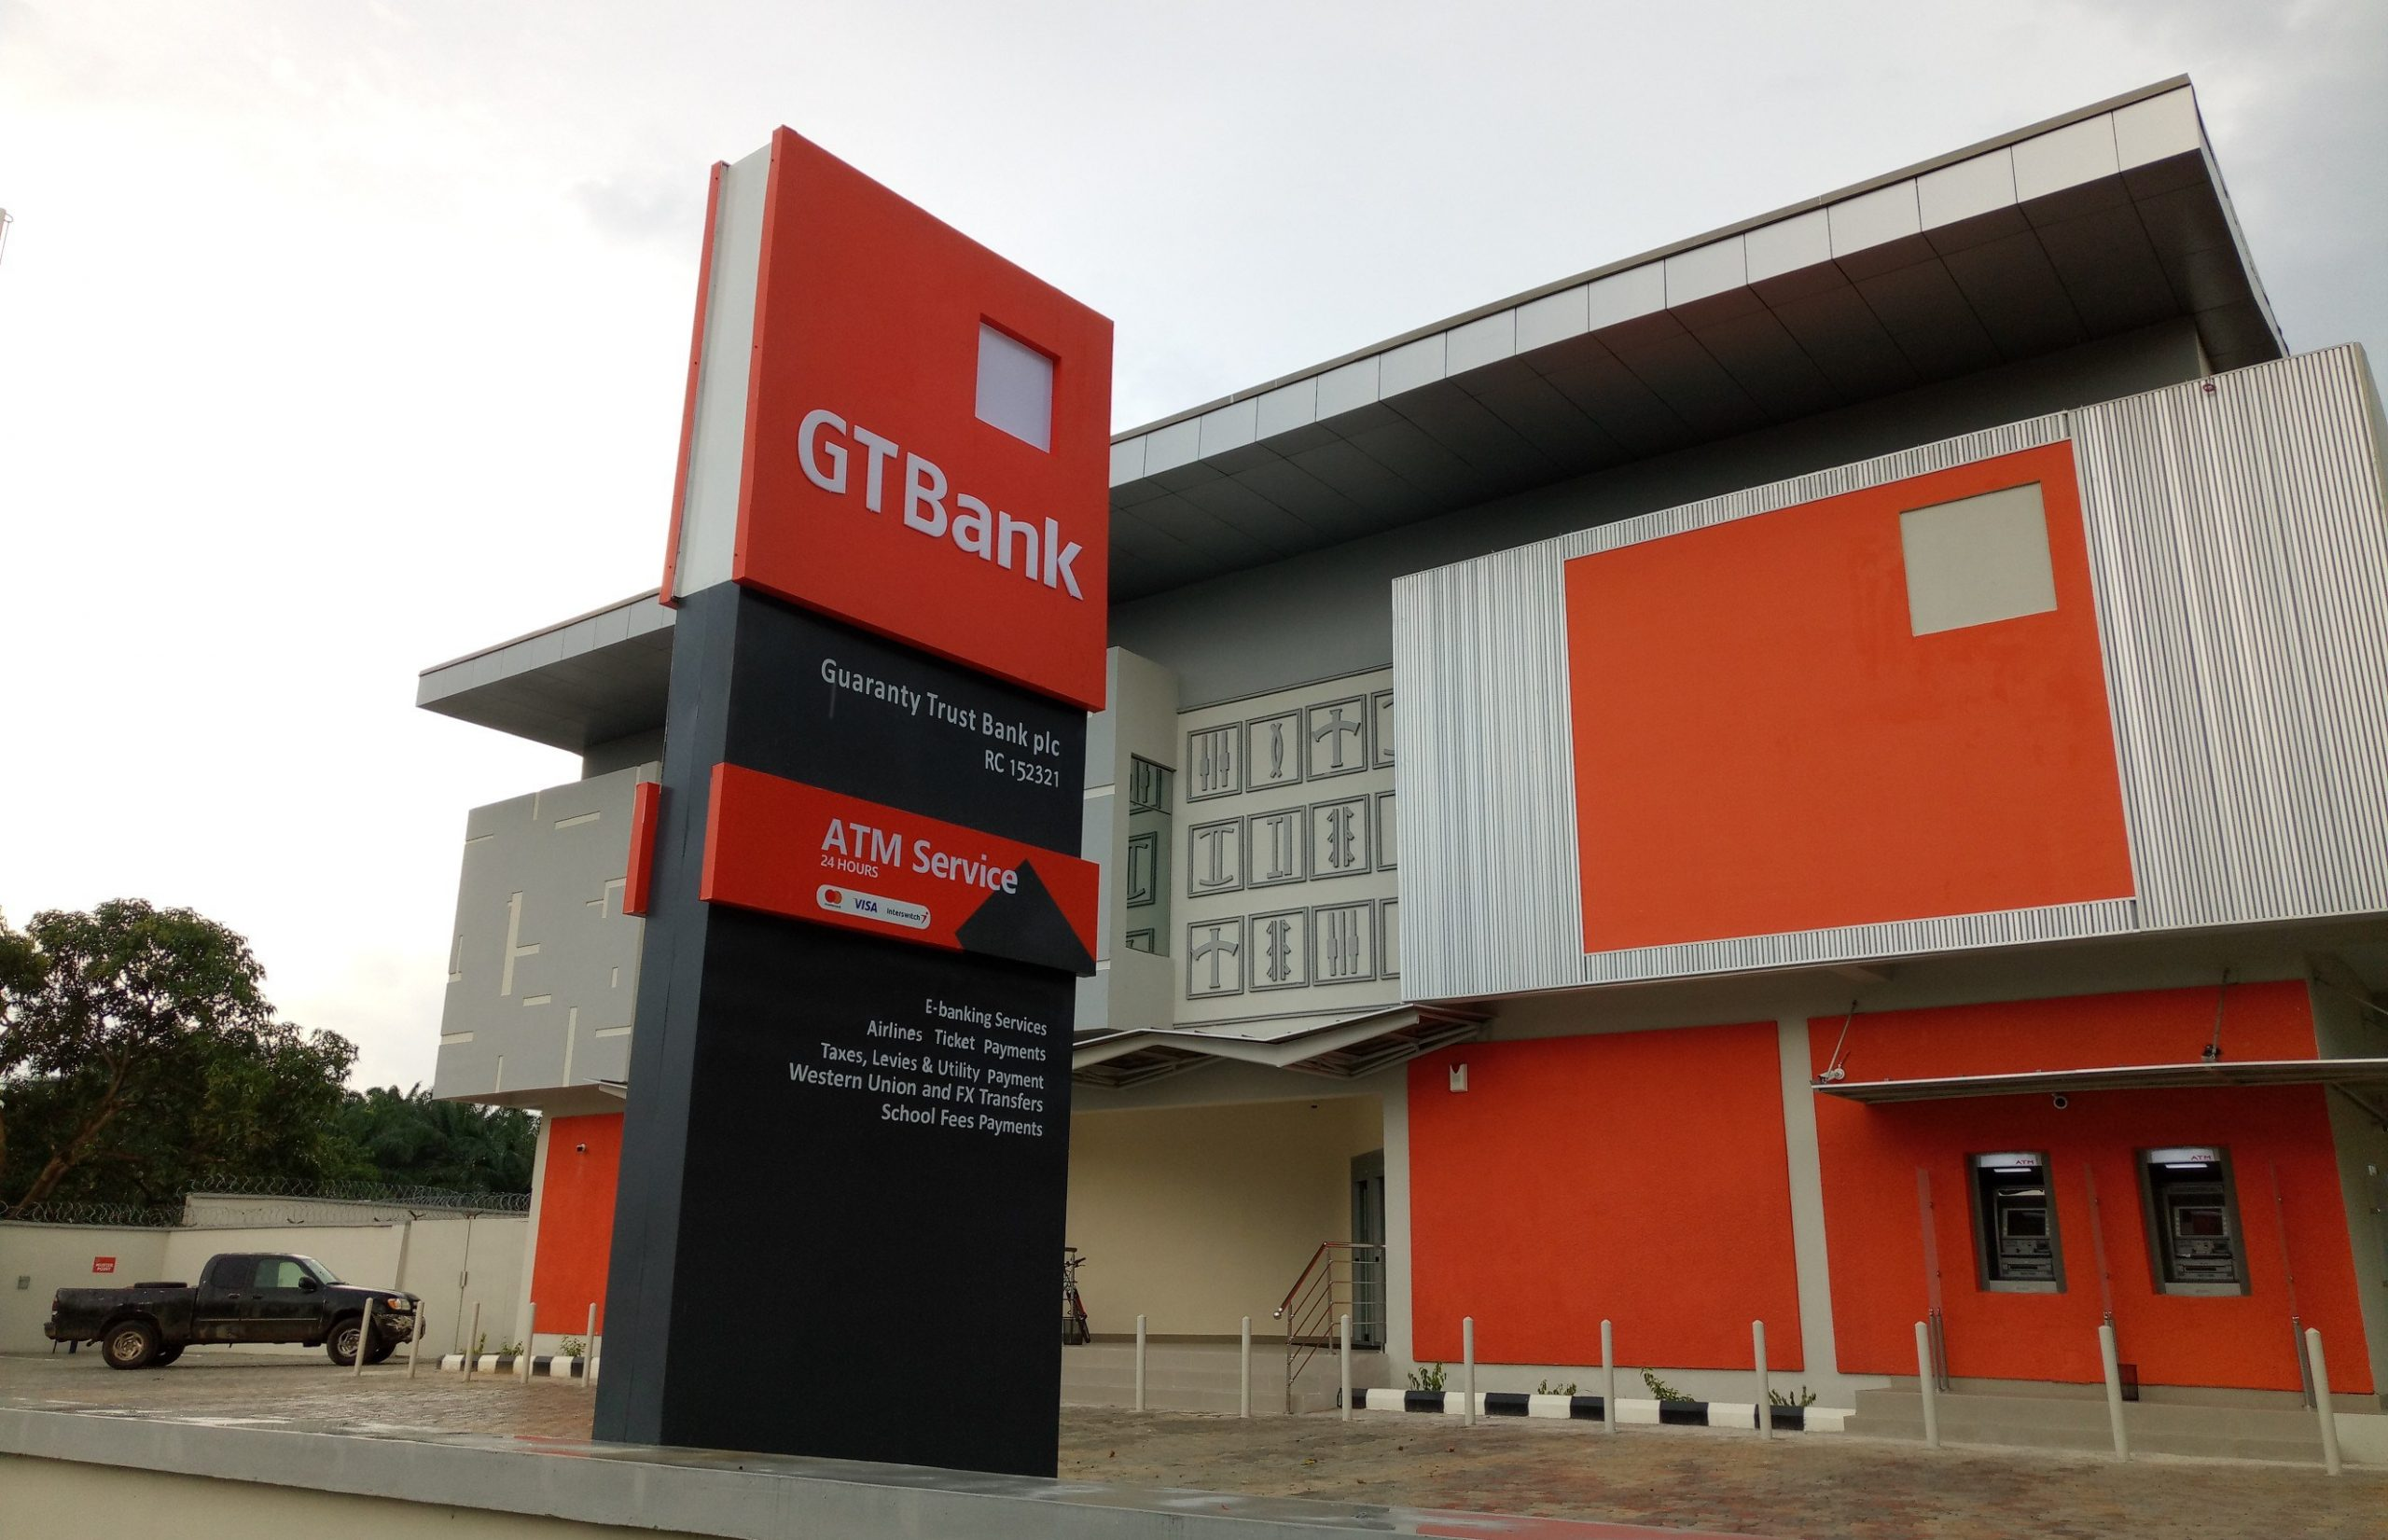 Guaranty Trust Bank plc is a foremost Nigerian financial institution with vast business outlays spanning Anglophone West Africa and the United Kingdom.